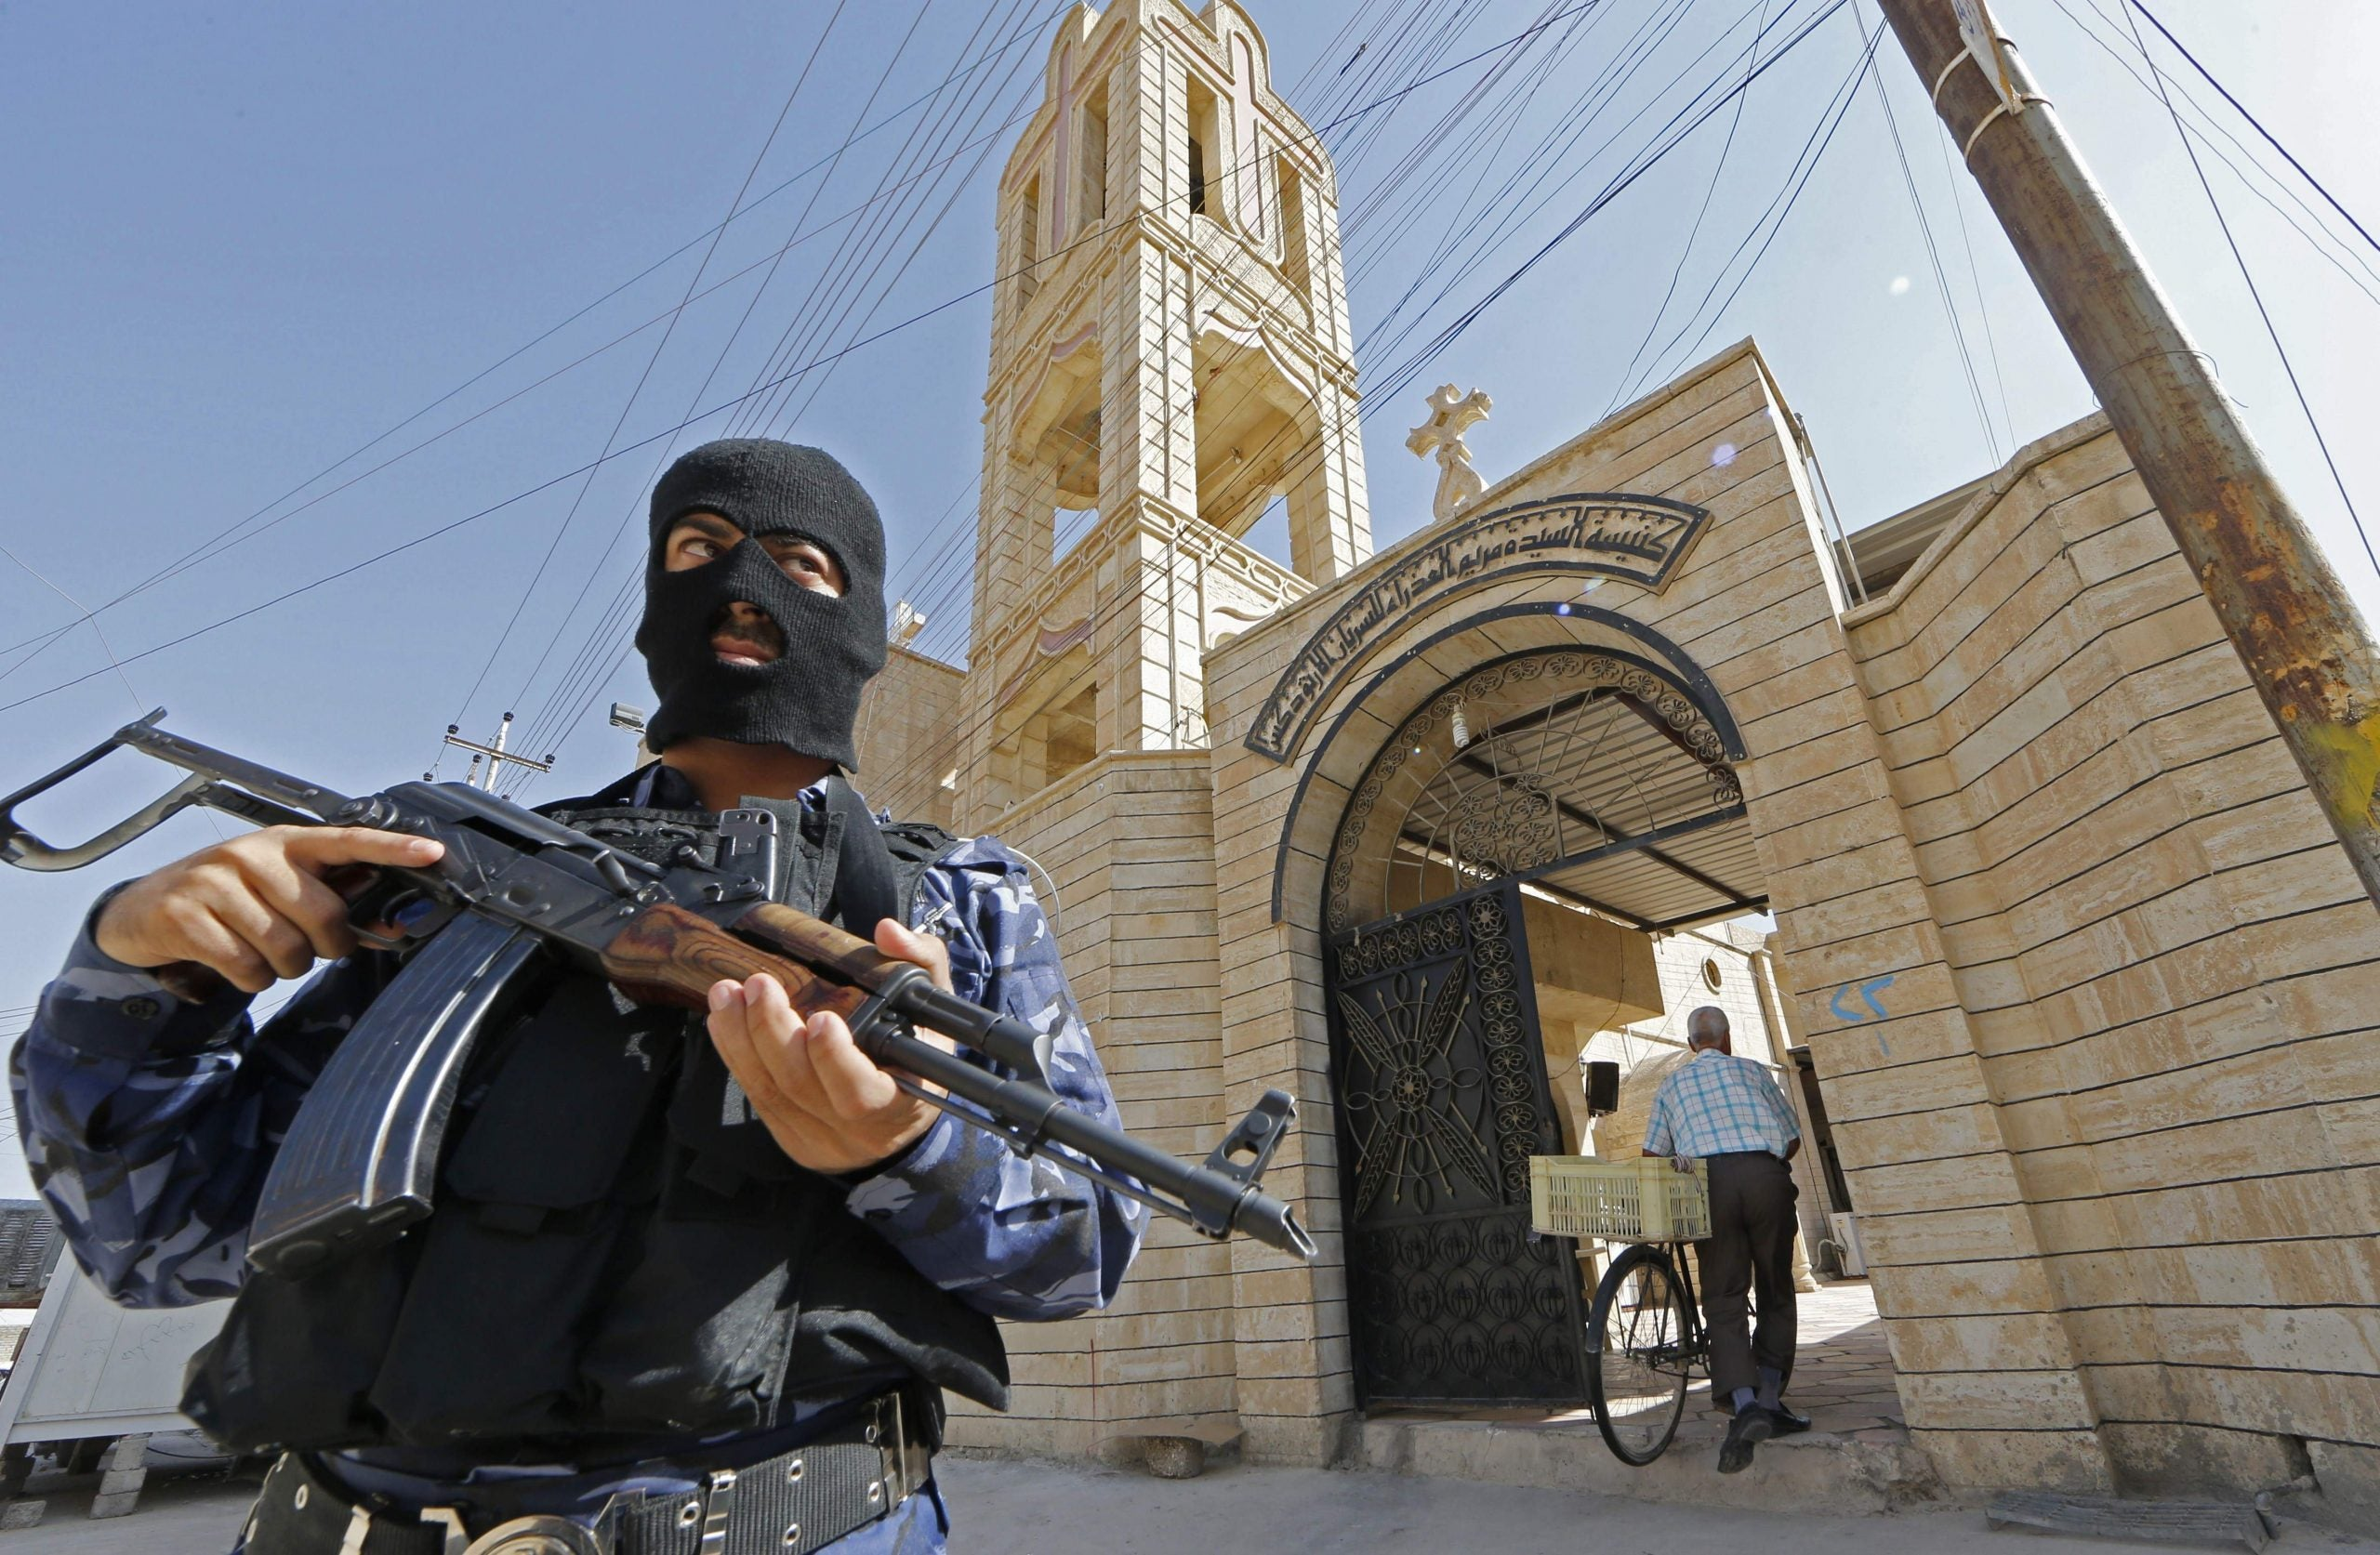 Paradise lost: is Christianity doomed in the Middle East?